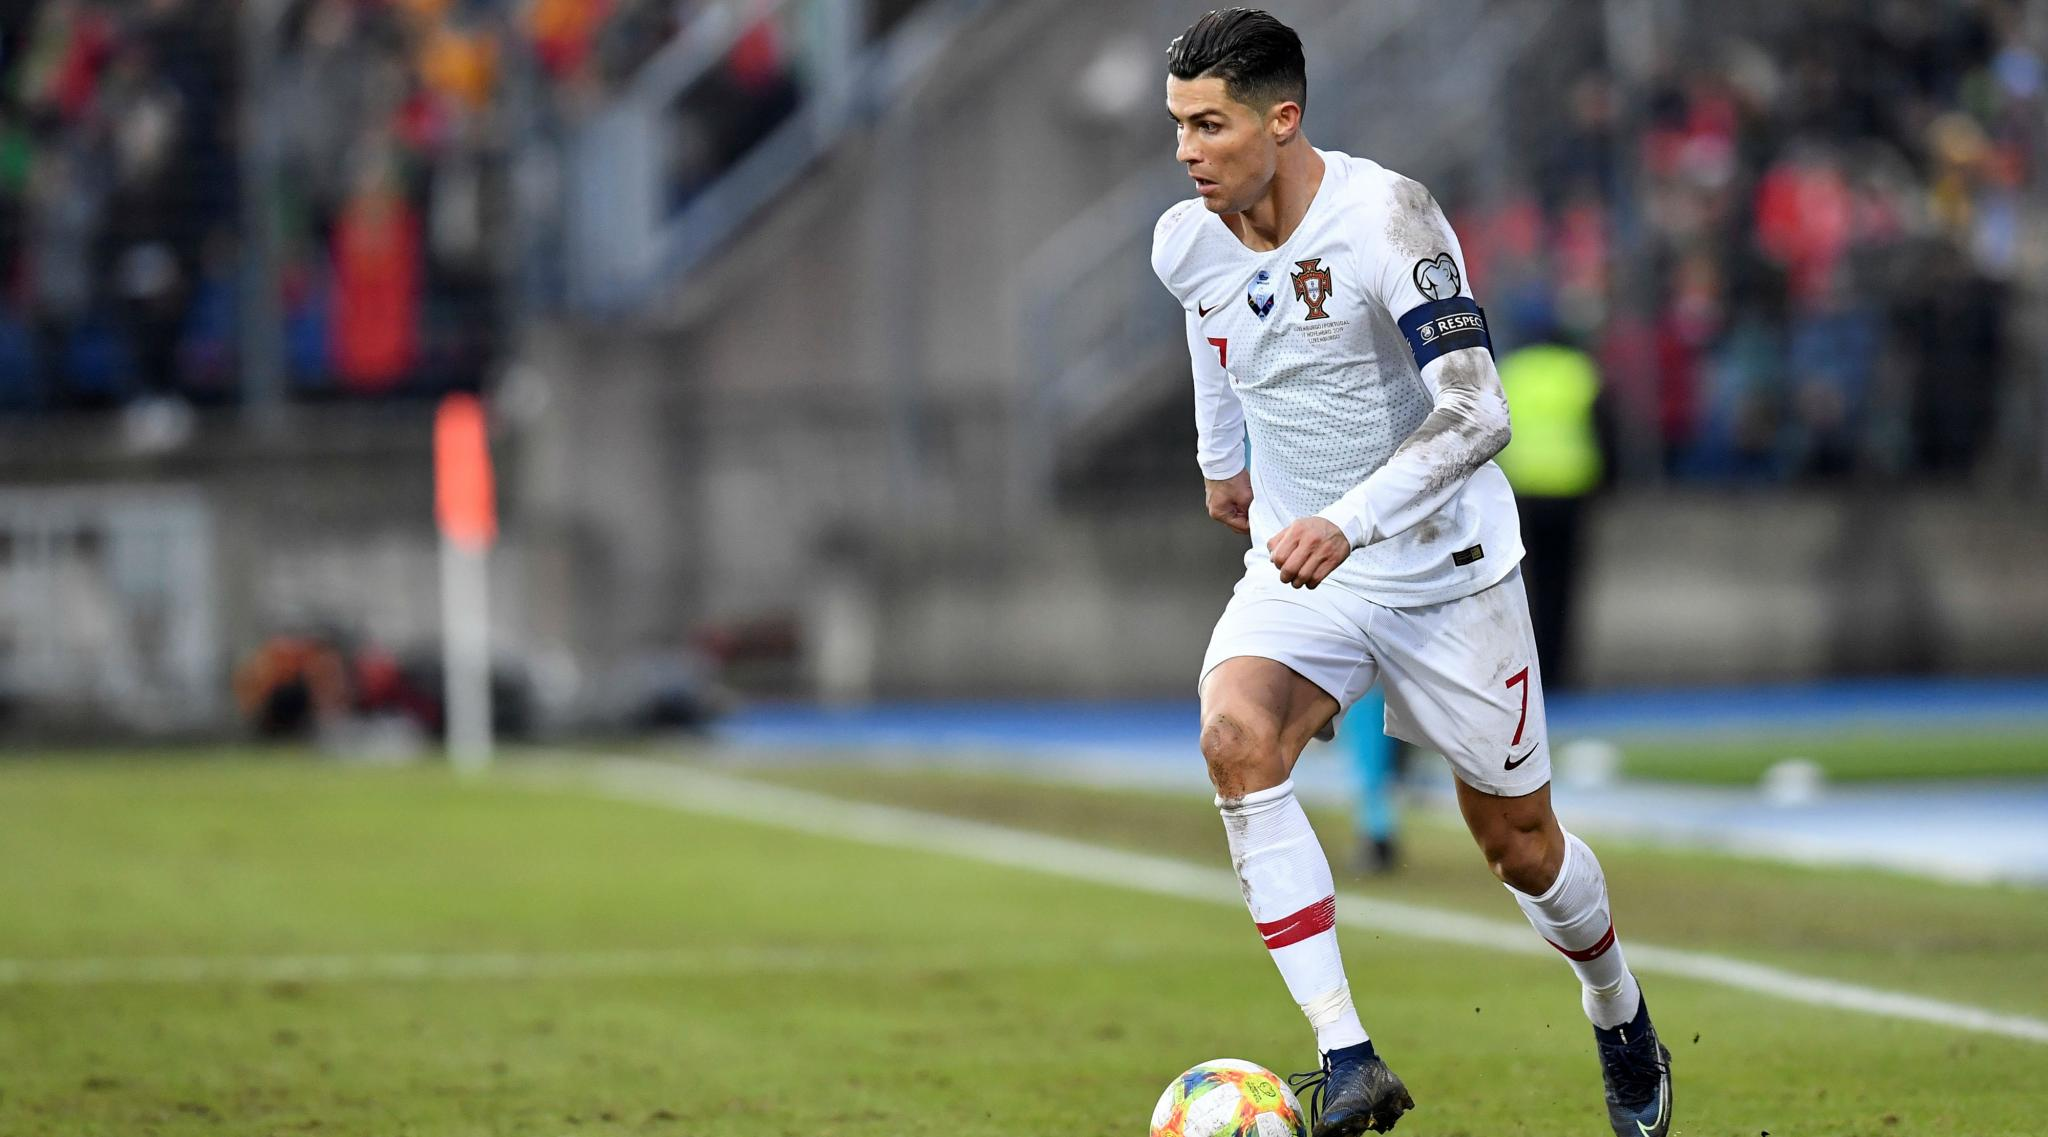 Cristiano Ronaldo Moves One Goal Short for Century As Portugal Secure Euro 2020 Spot With Win Over Luxembourg